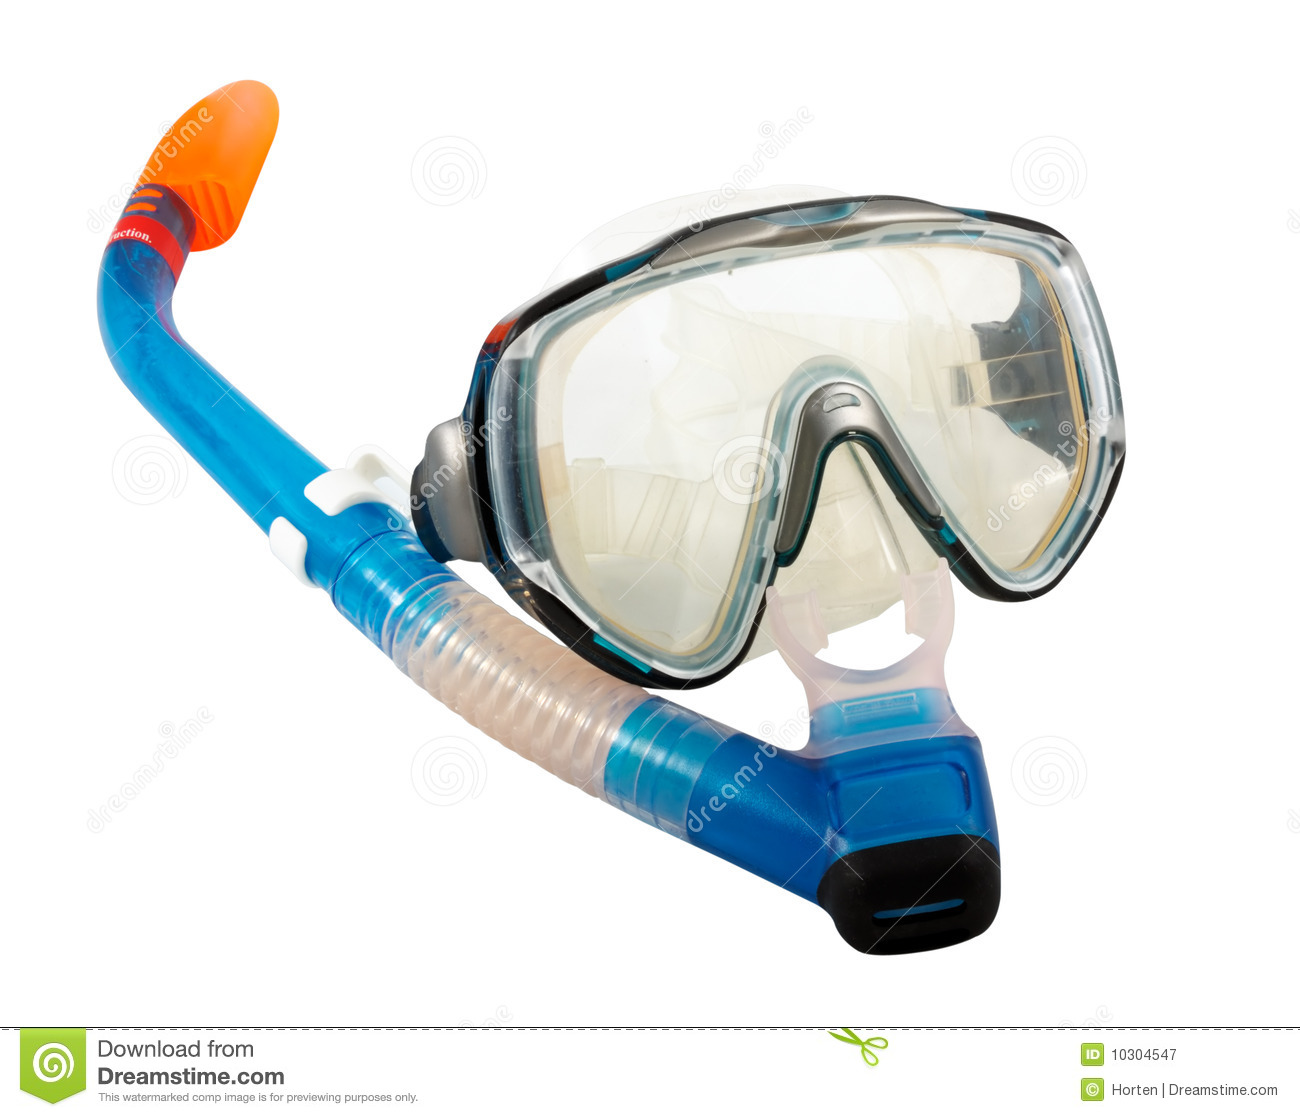 niagara falls ny map with Royalty Free Stock Photography Diving Mask Snorkel Image10304547 on 2910763895 further Skylon Tower moreover Grand Canyon National Park as well Love Canal Still Oozing Poison 35 Years Later as well iloveny.